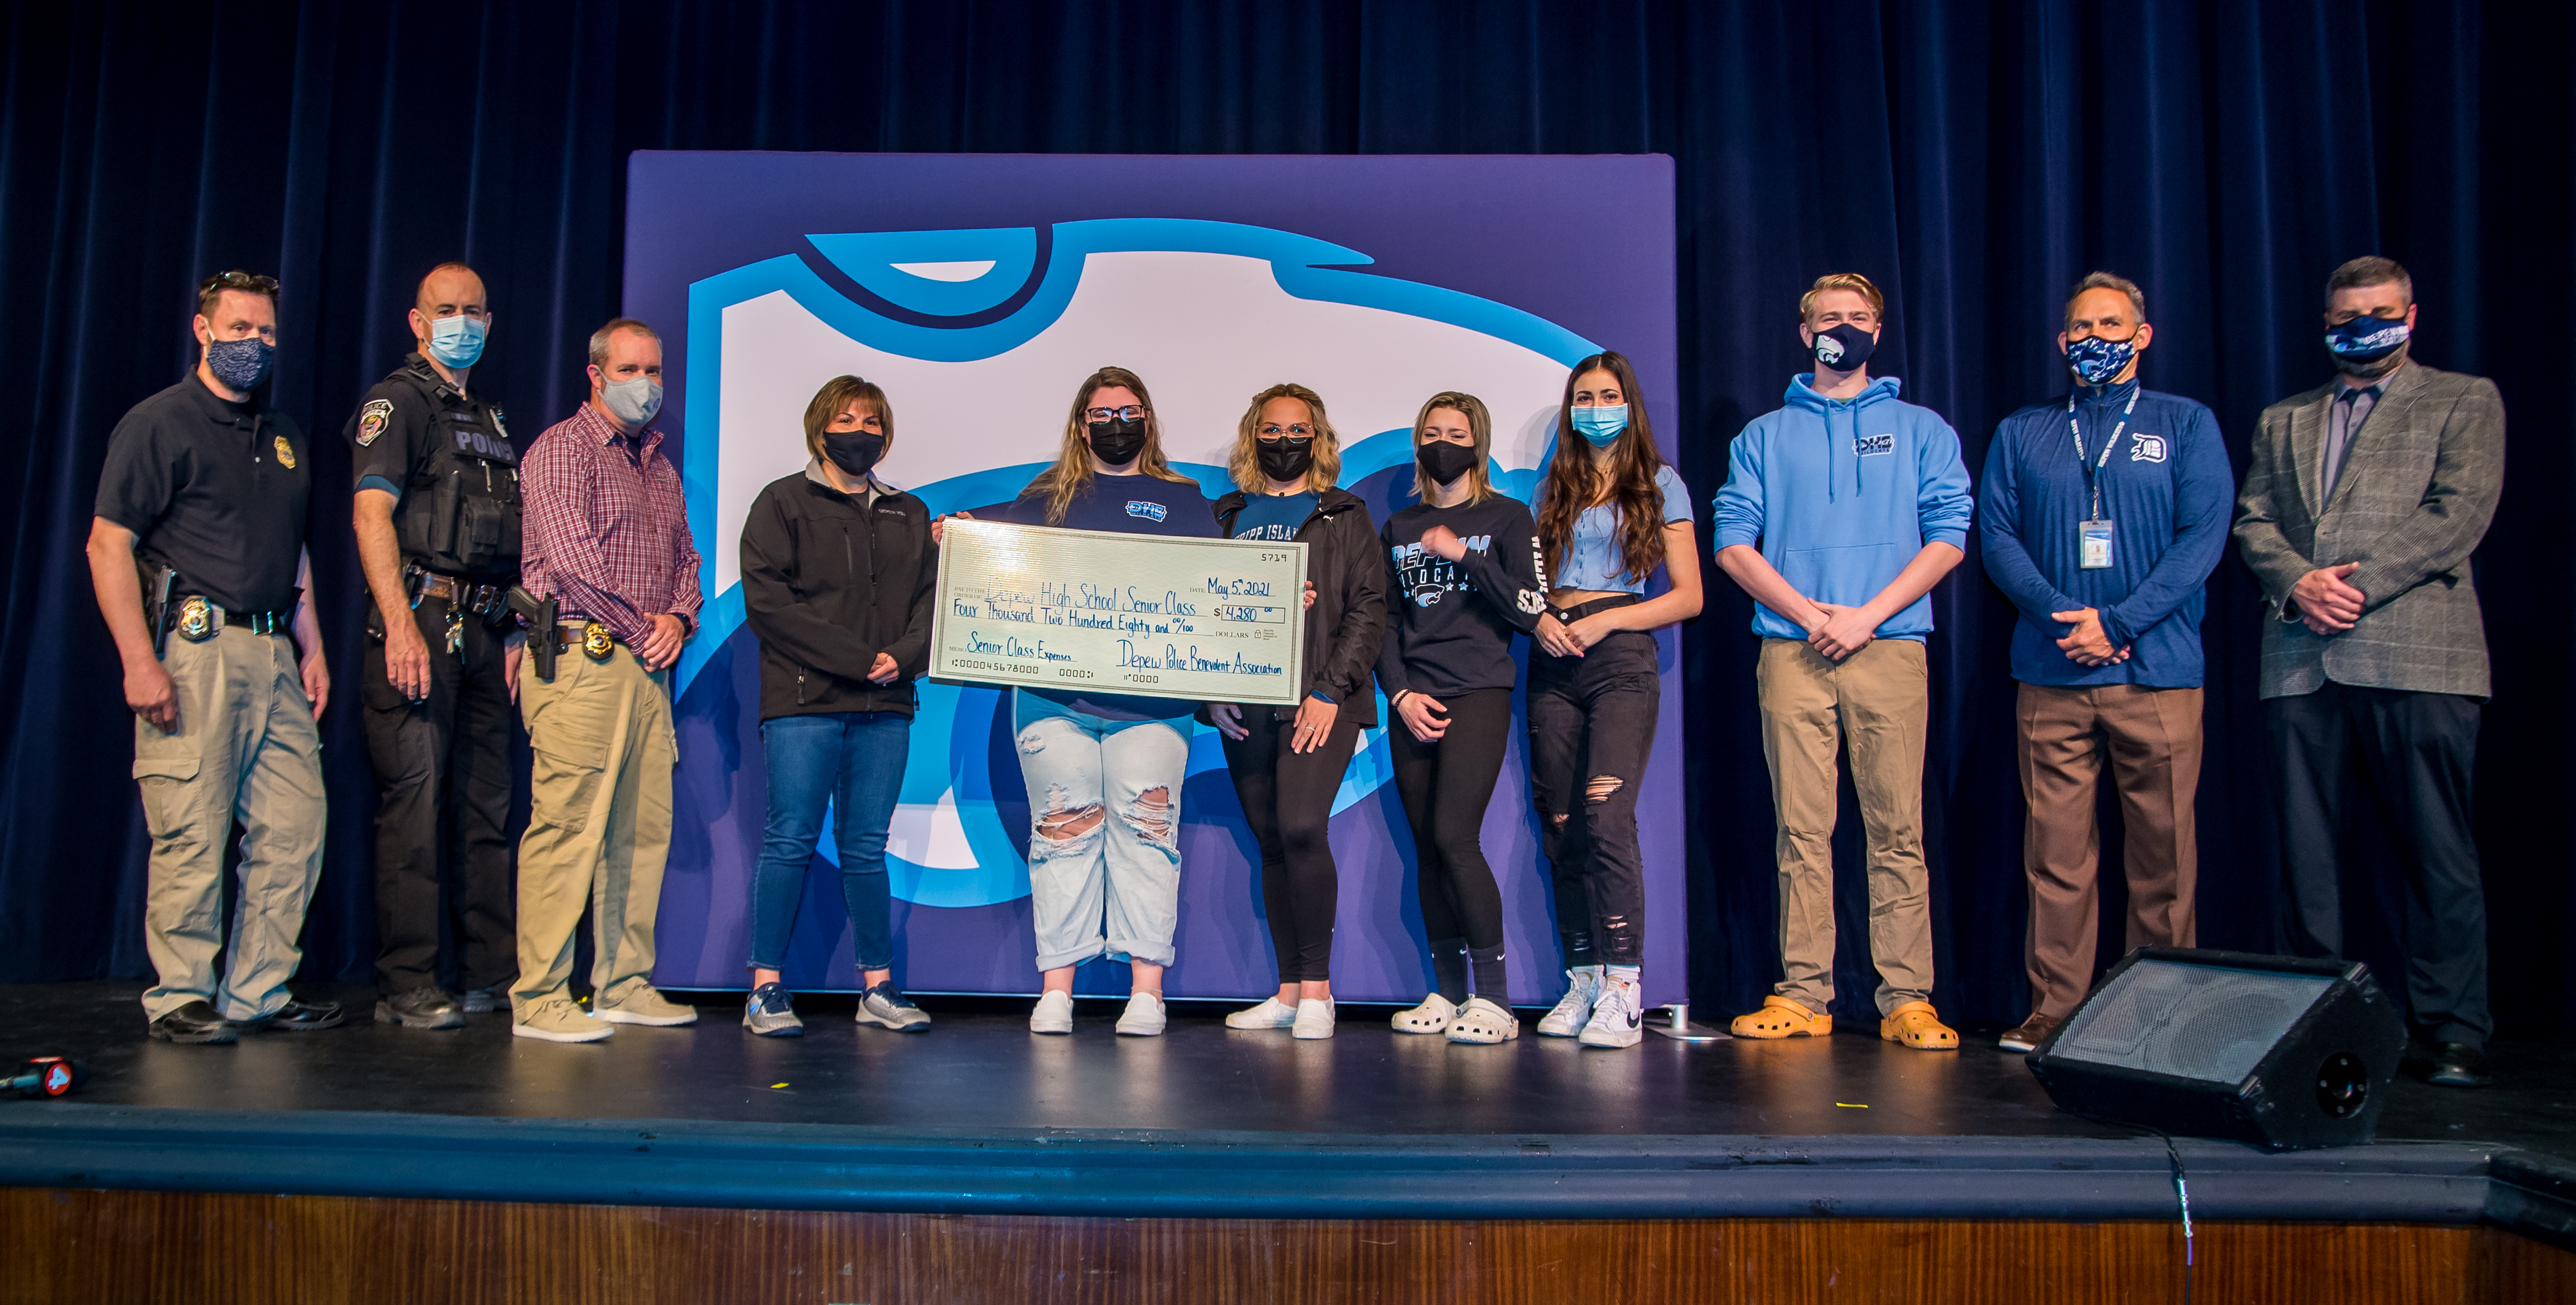 Depew Police present check to the Class of 2021